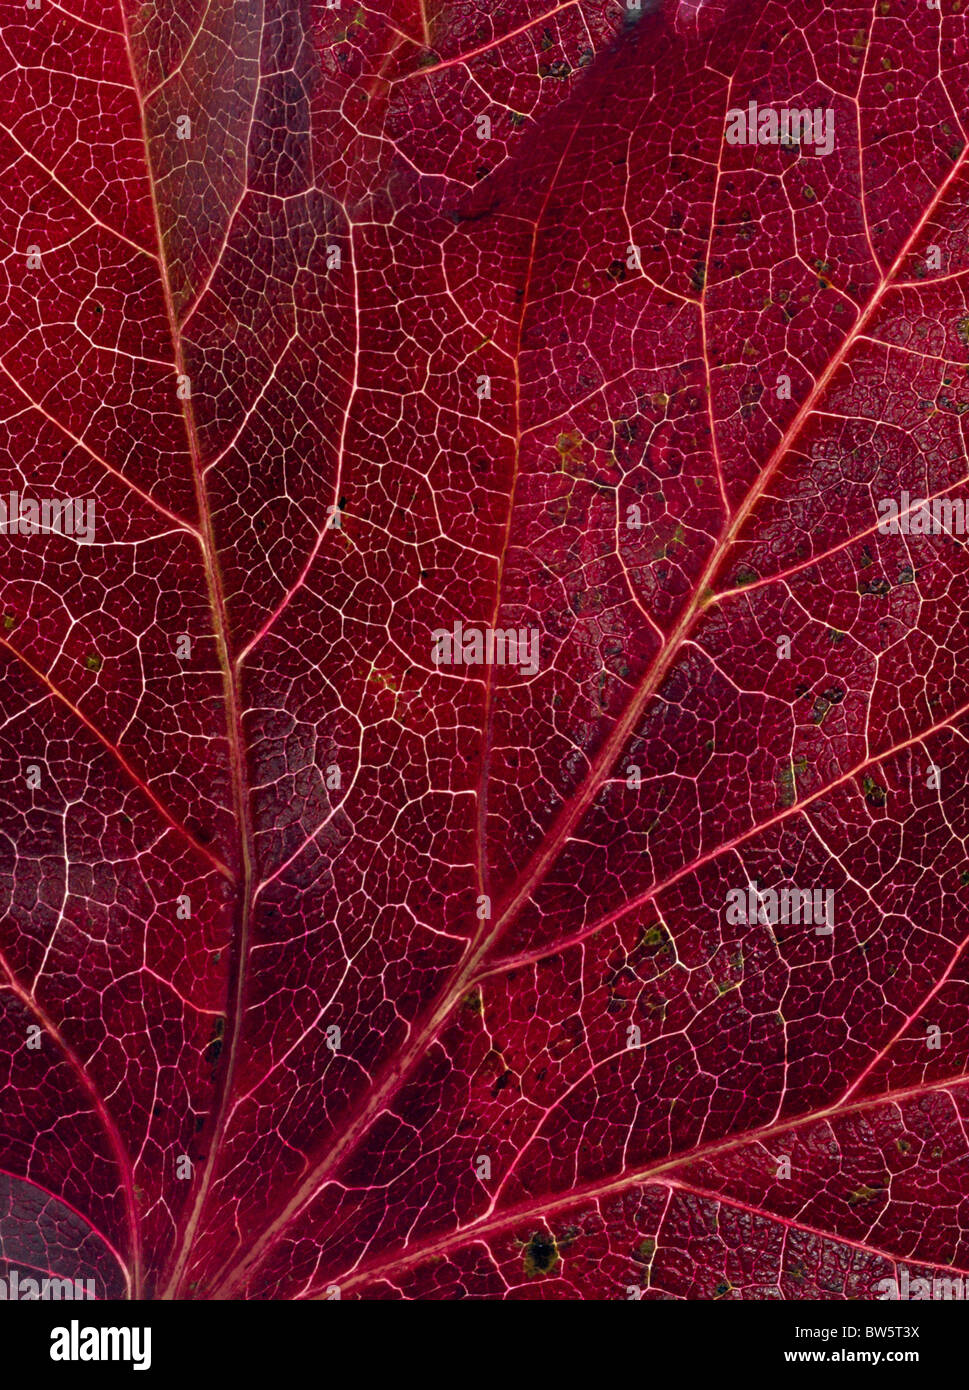 Macro close-up of leaf veins Stock Photo